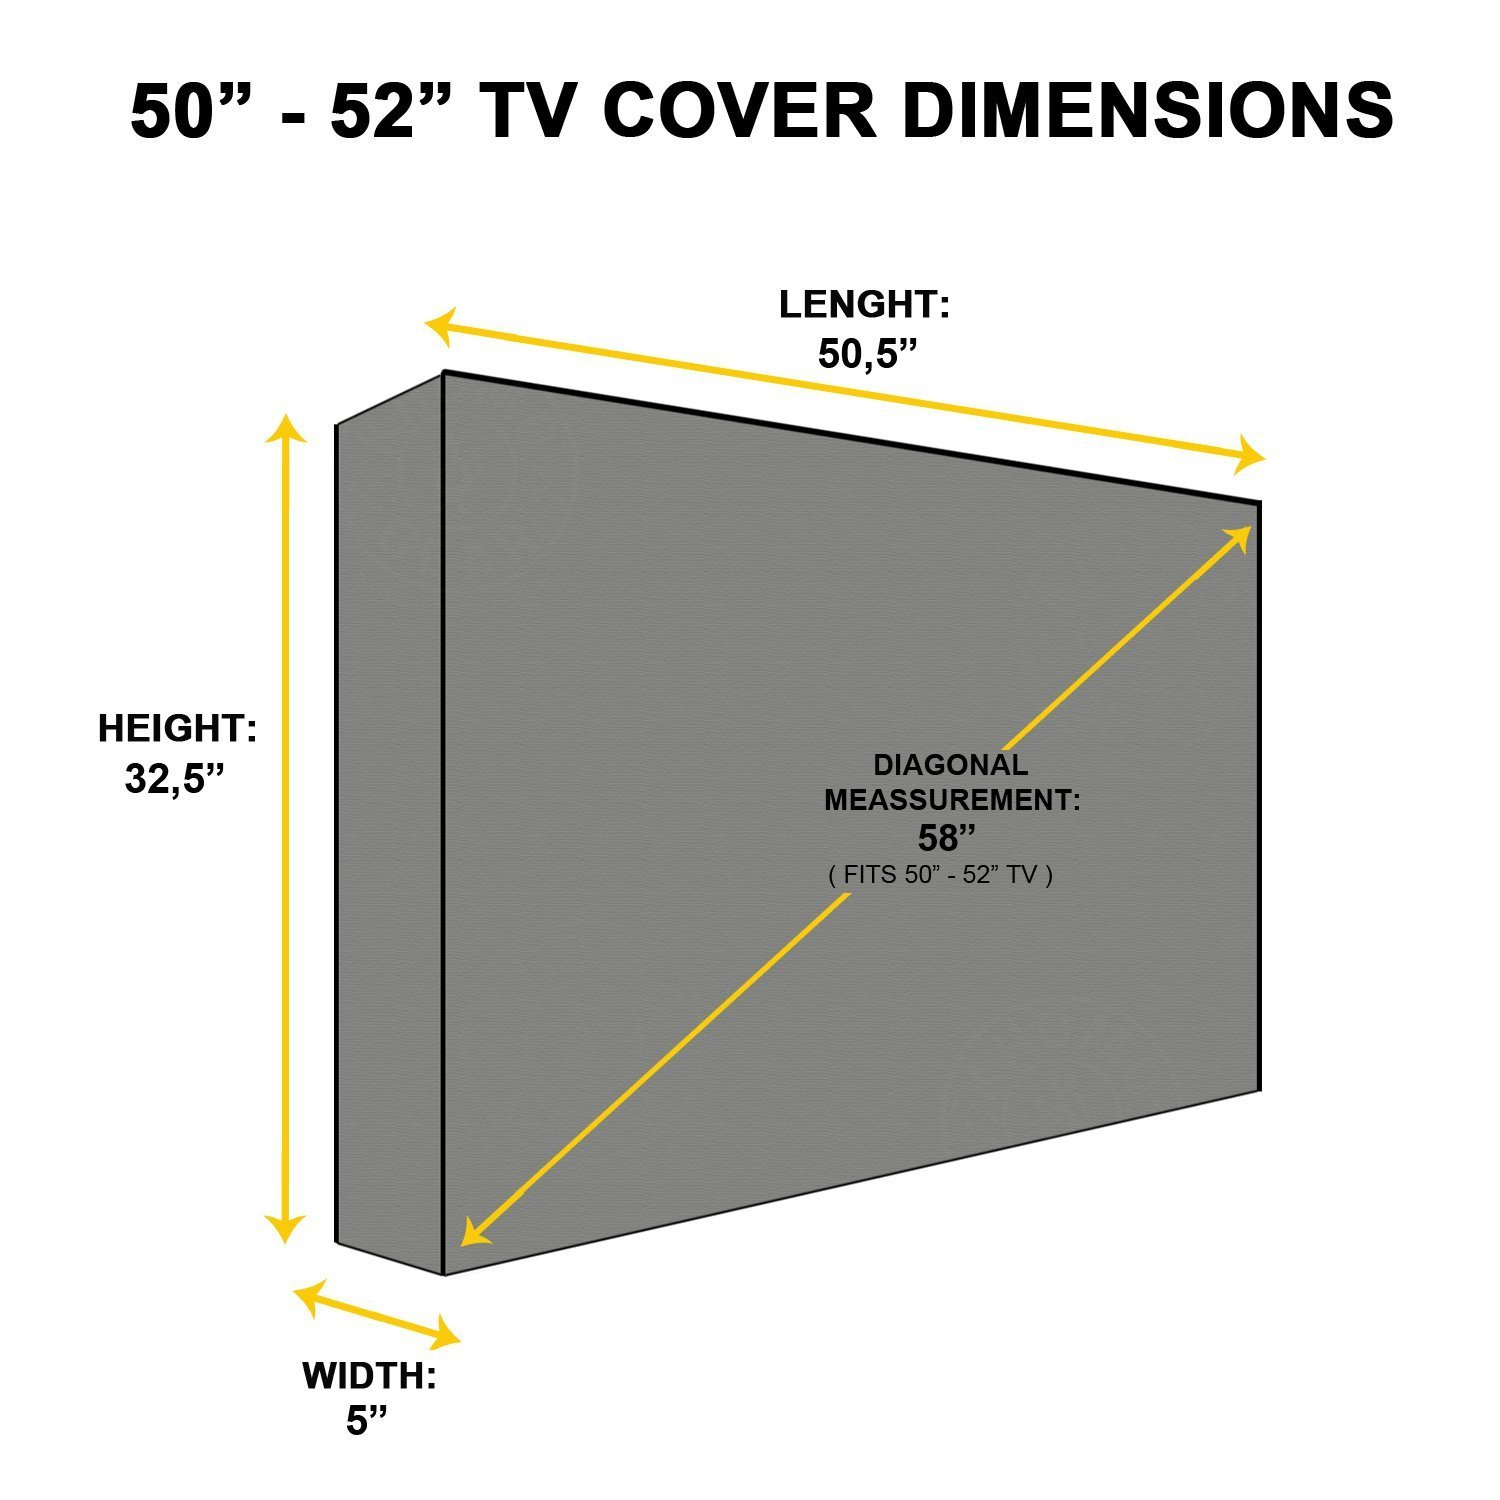 Outdoor TV Cover, Brown Universal Weatherproof Protector for 50'' - 52'' TV - Fits Most Mounts & Brackets by KHOMO GEAR (Image #3)